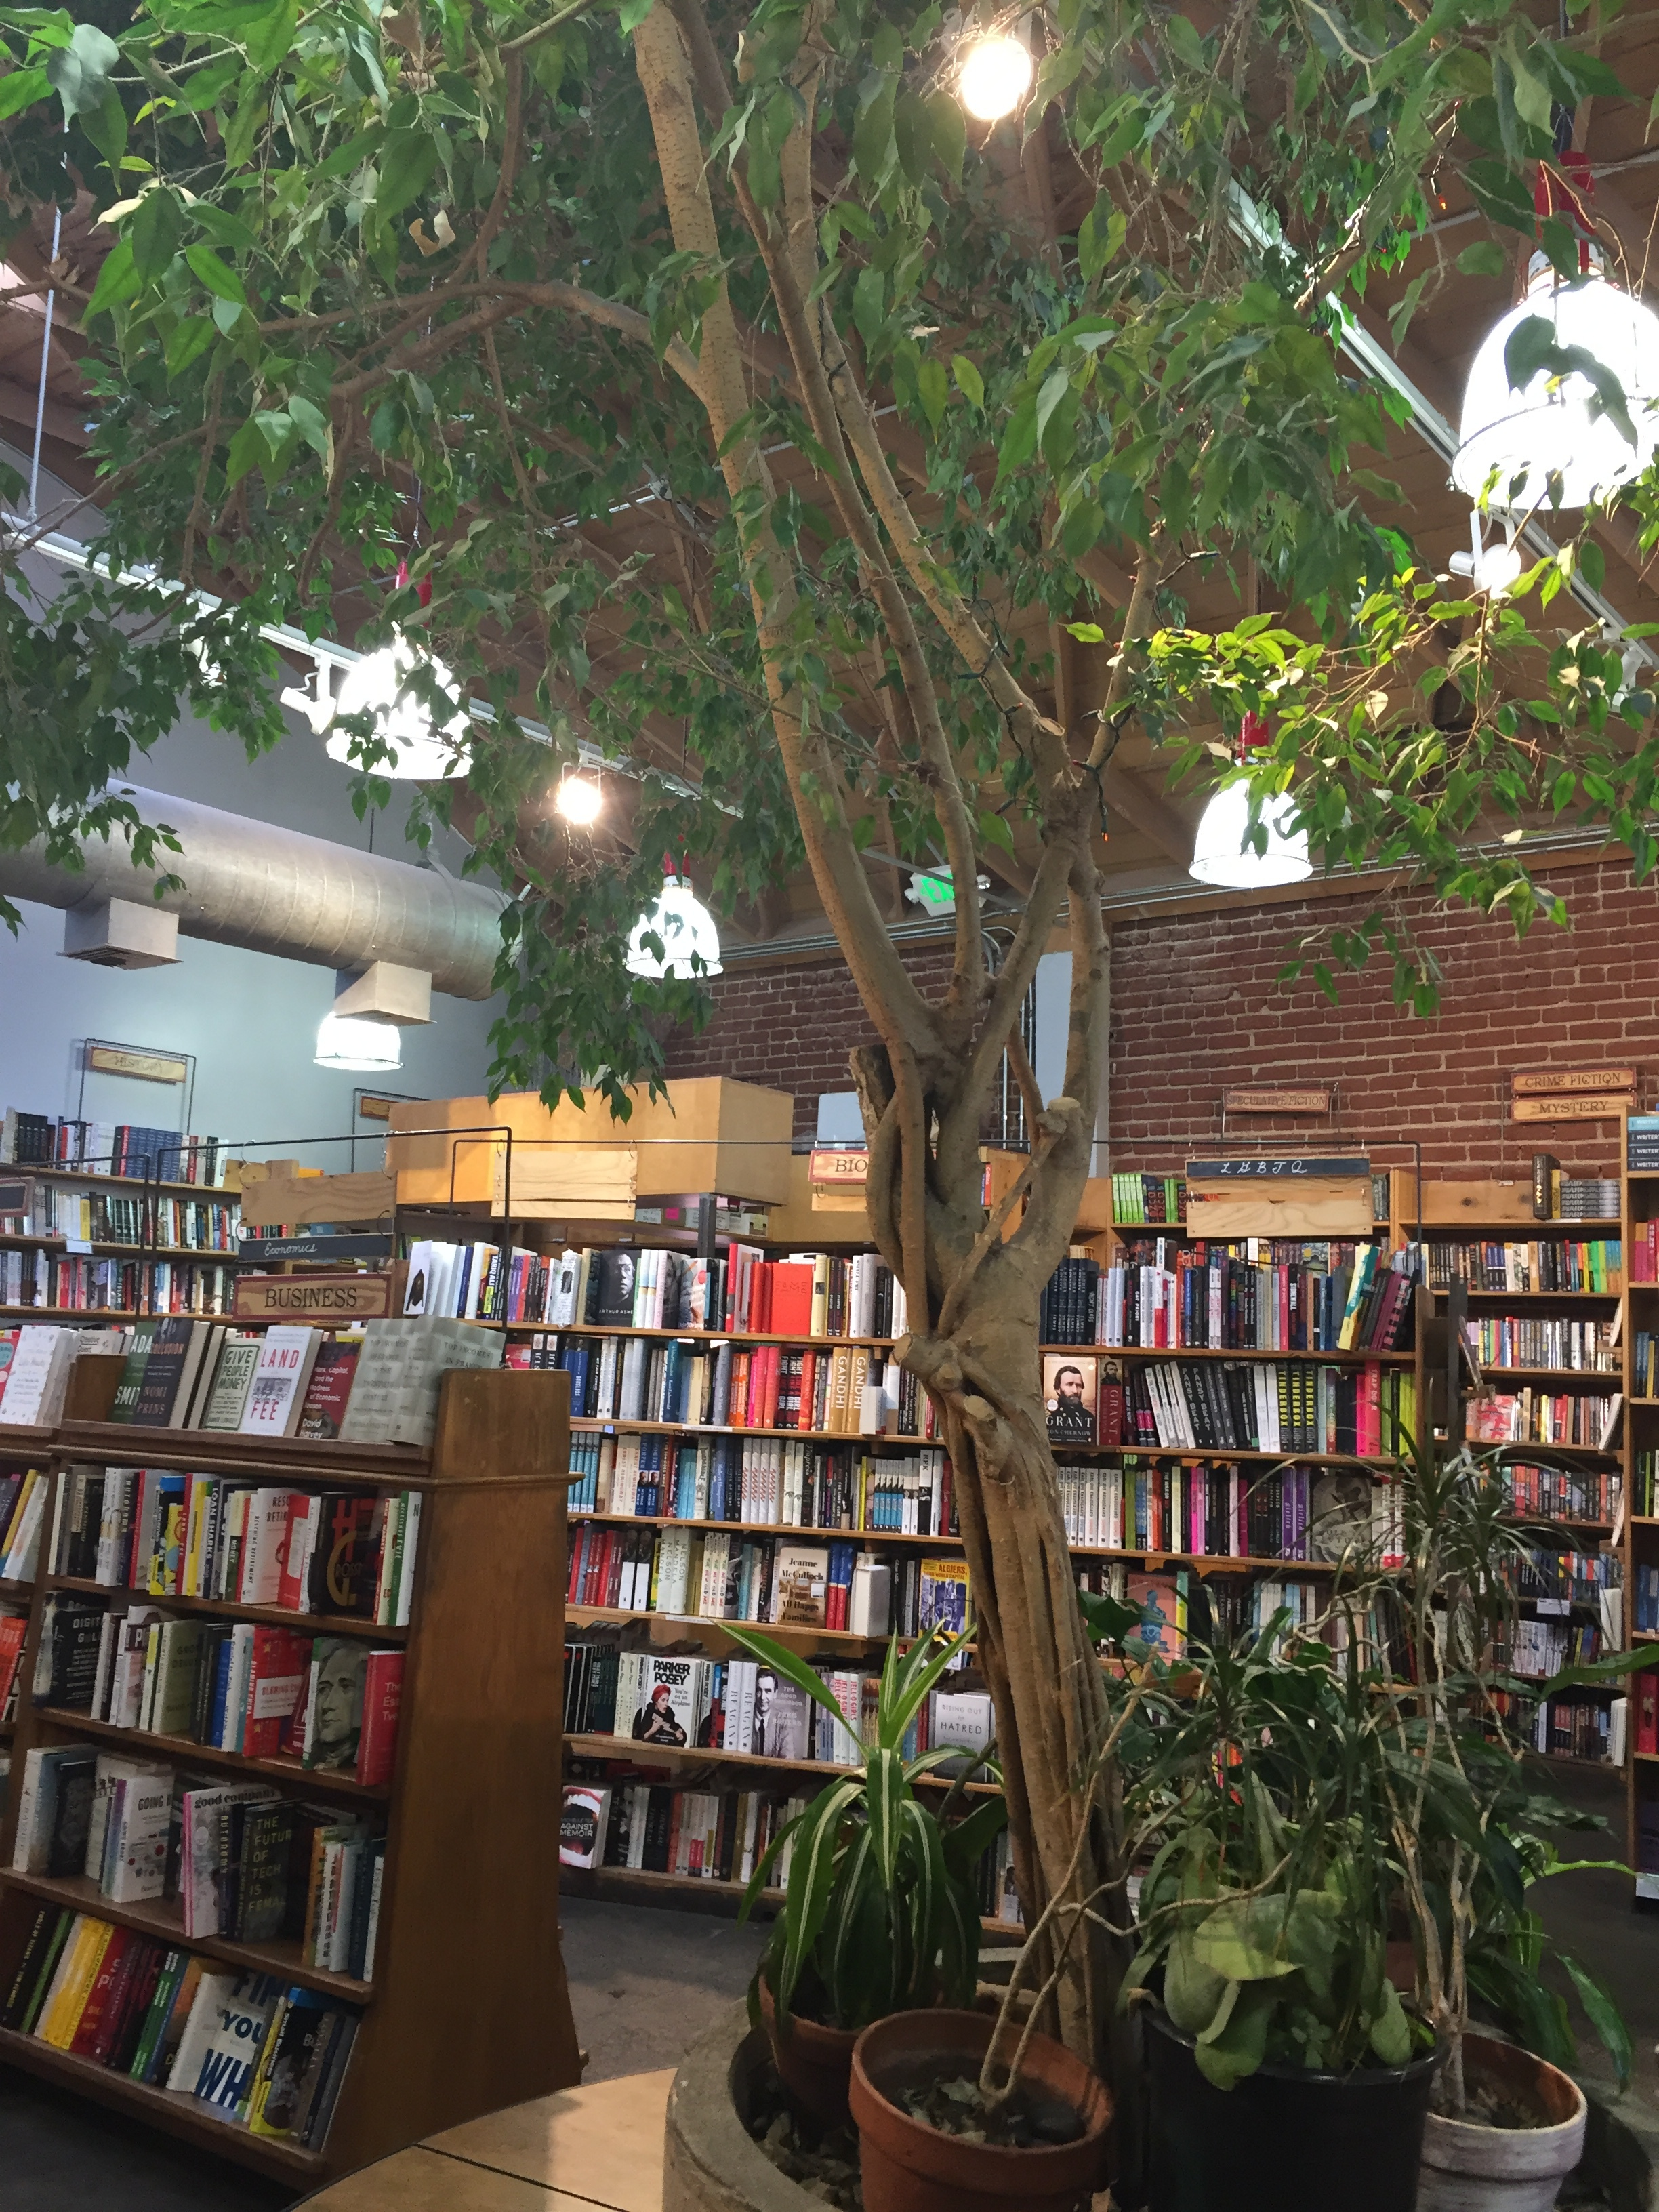 [image description: The inside of Skylight Books. A large tree grows inside the building and there's a circular bench around the tree's base. Behind the tree are several bookshelves and hanging lights.]